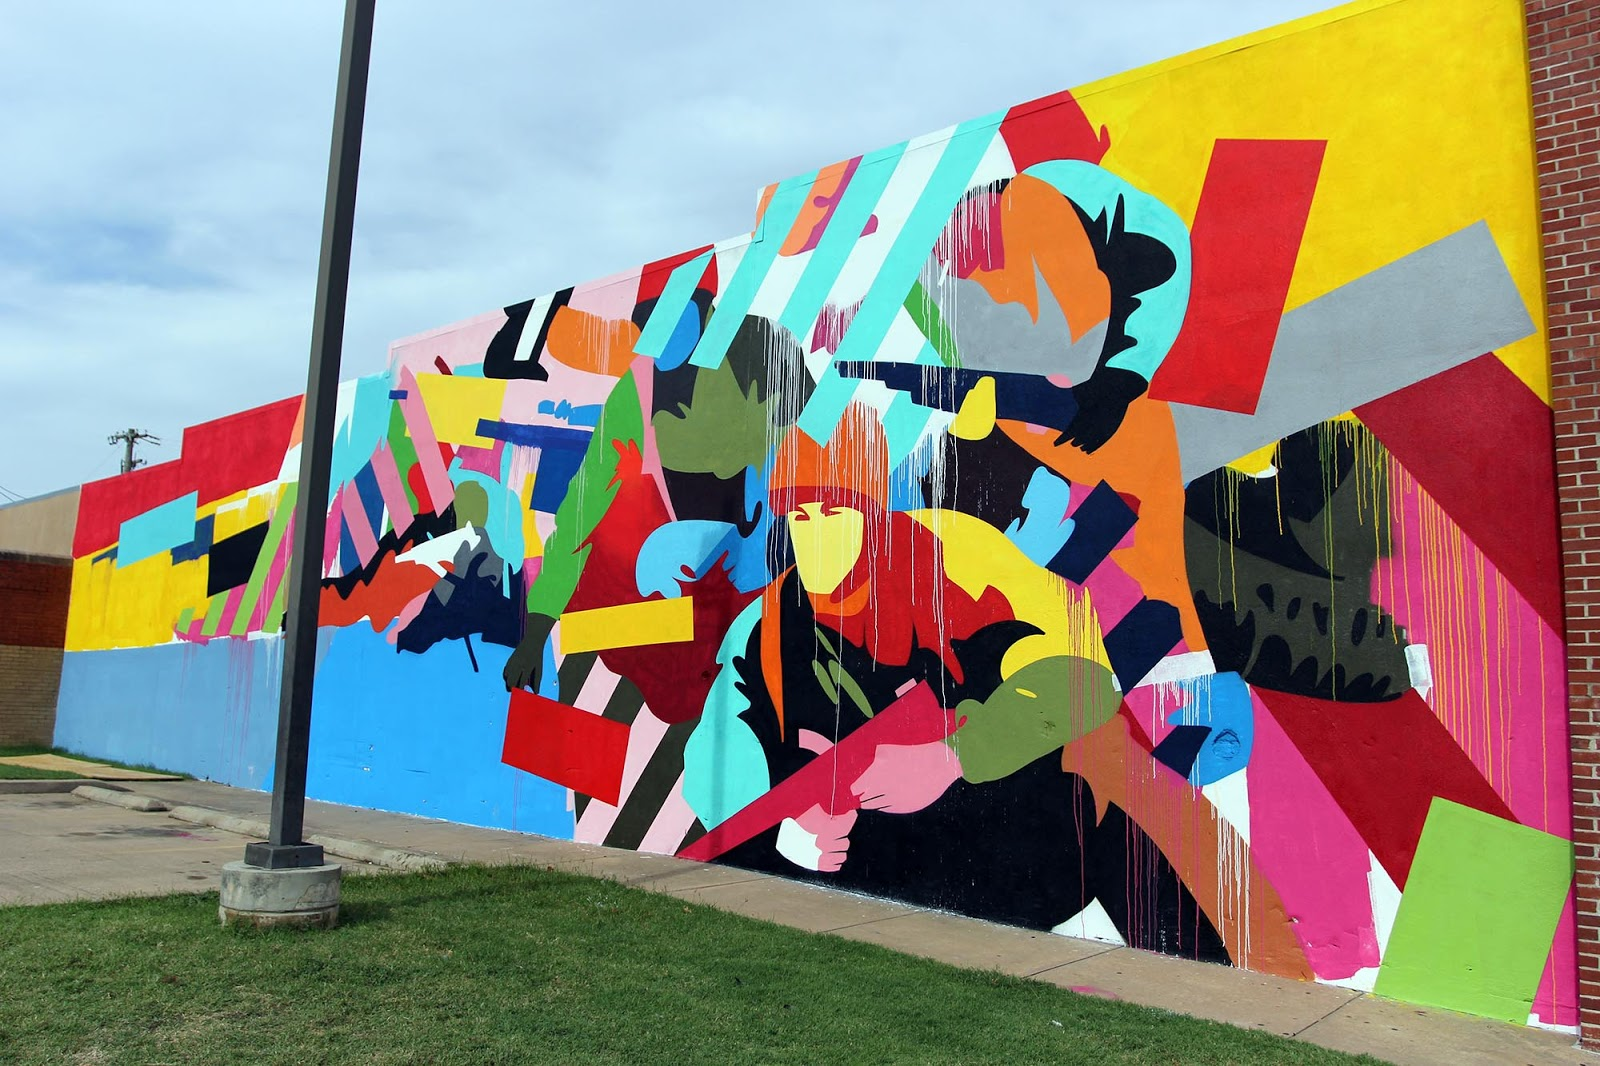 unexpected 15 maser creates a new mural in fort smith arkansas